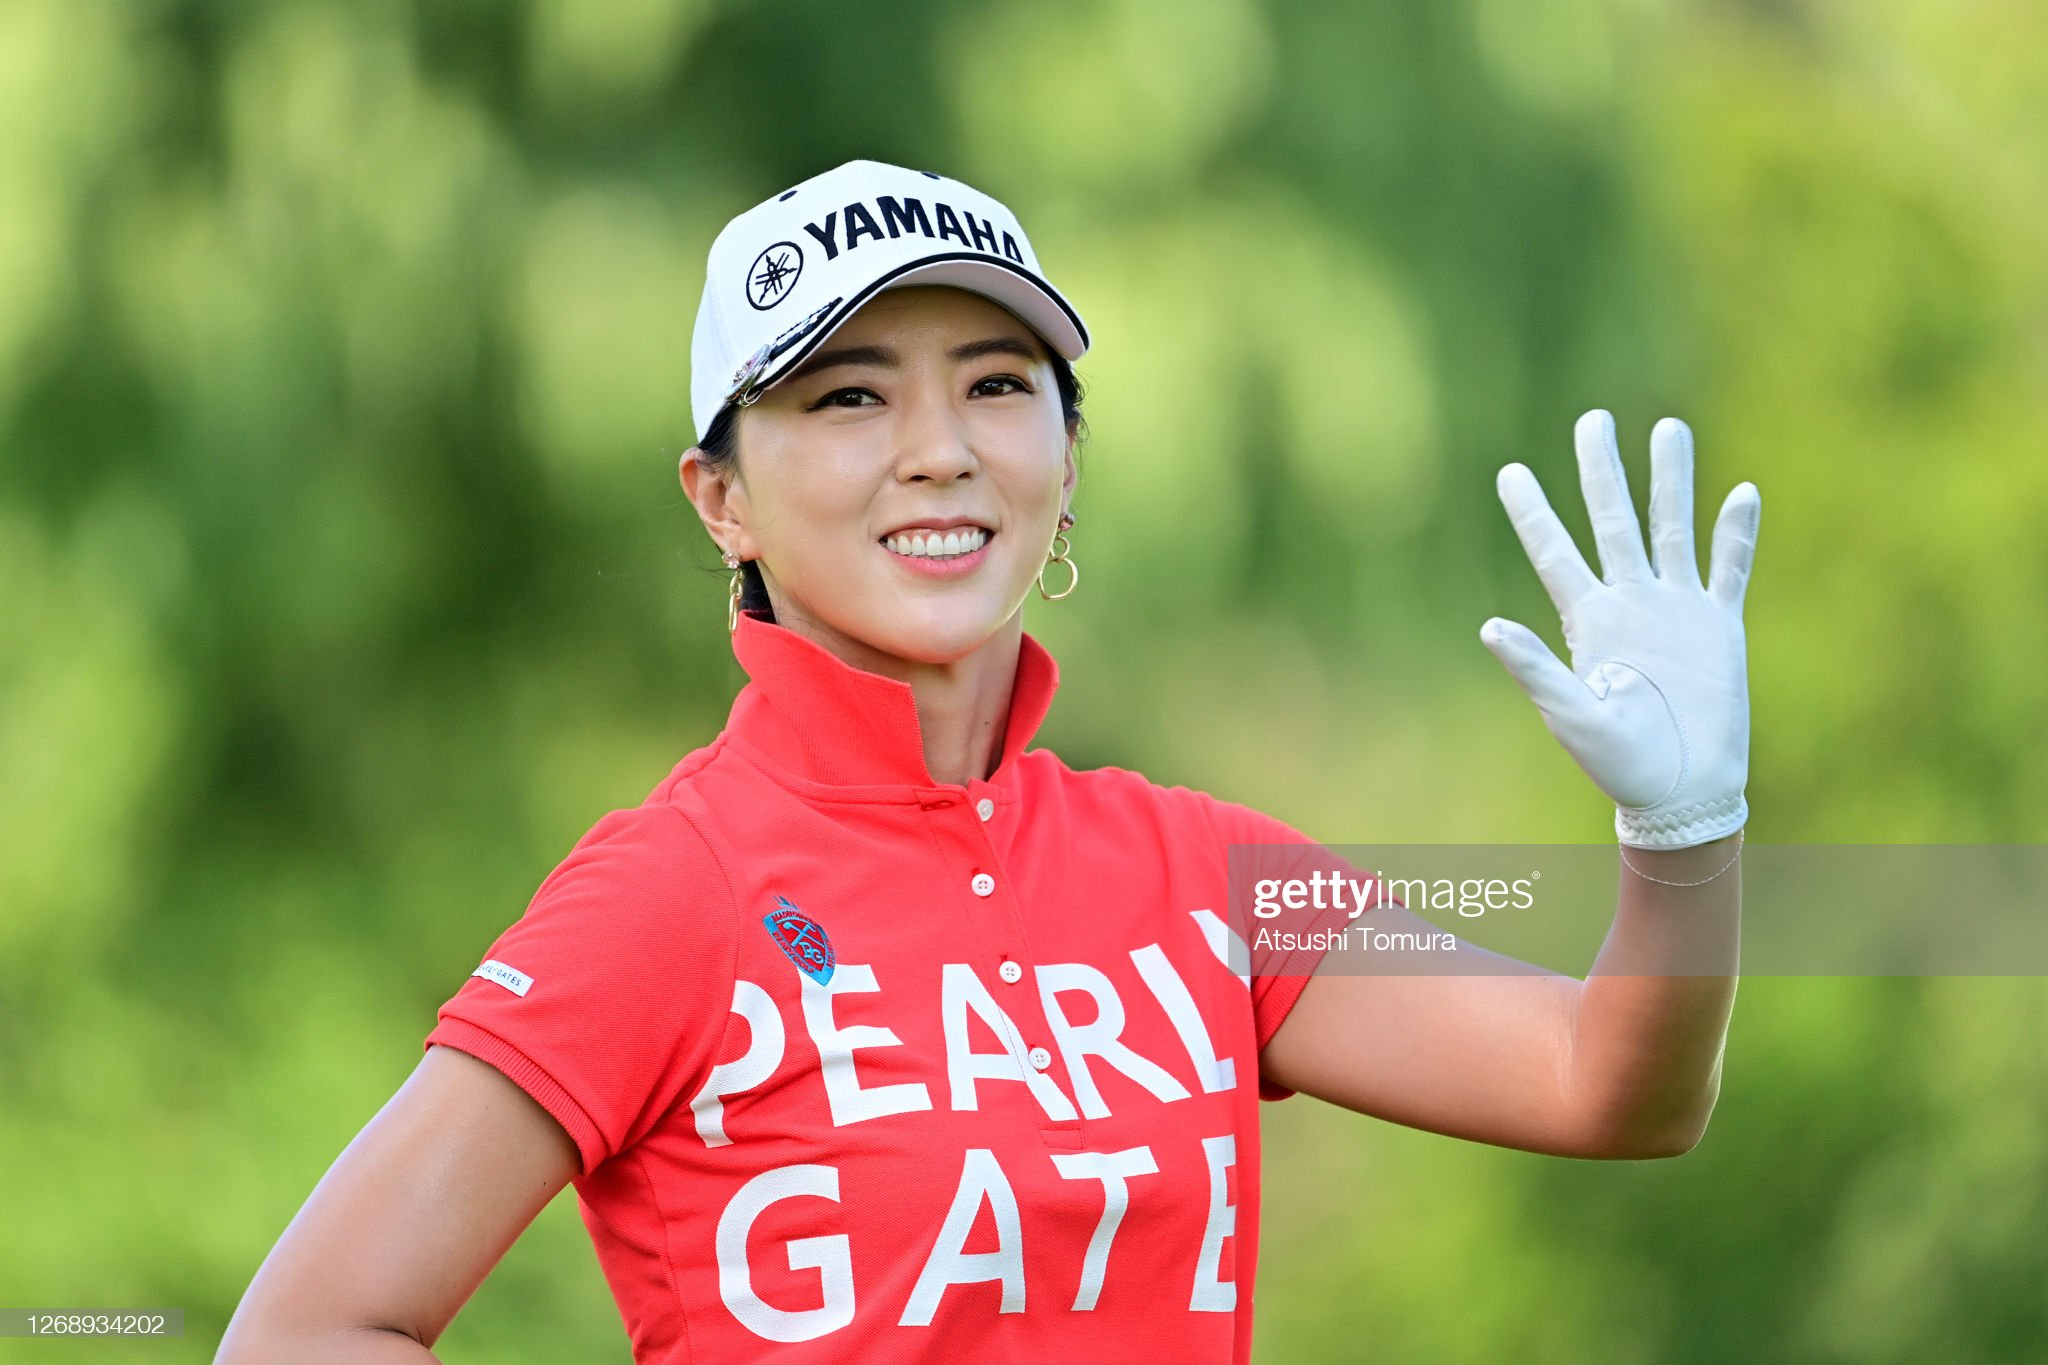 https://media.gettyimages.com/photos/chaeyoung-yoon-of-south-korea-poses-on-the-12th-hole-during-the-first-picture-id1268934202?s=2048x2048